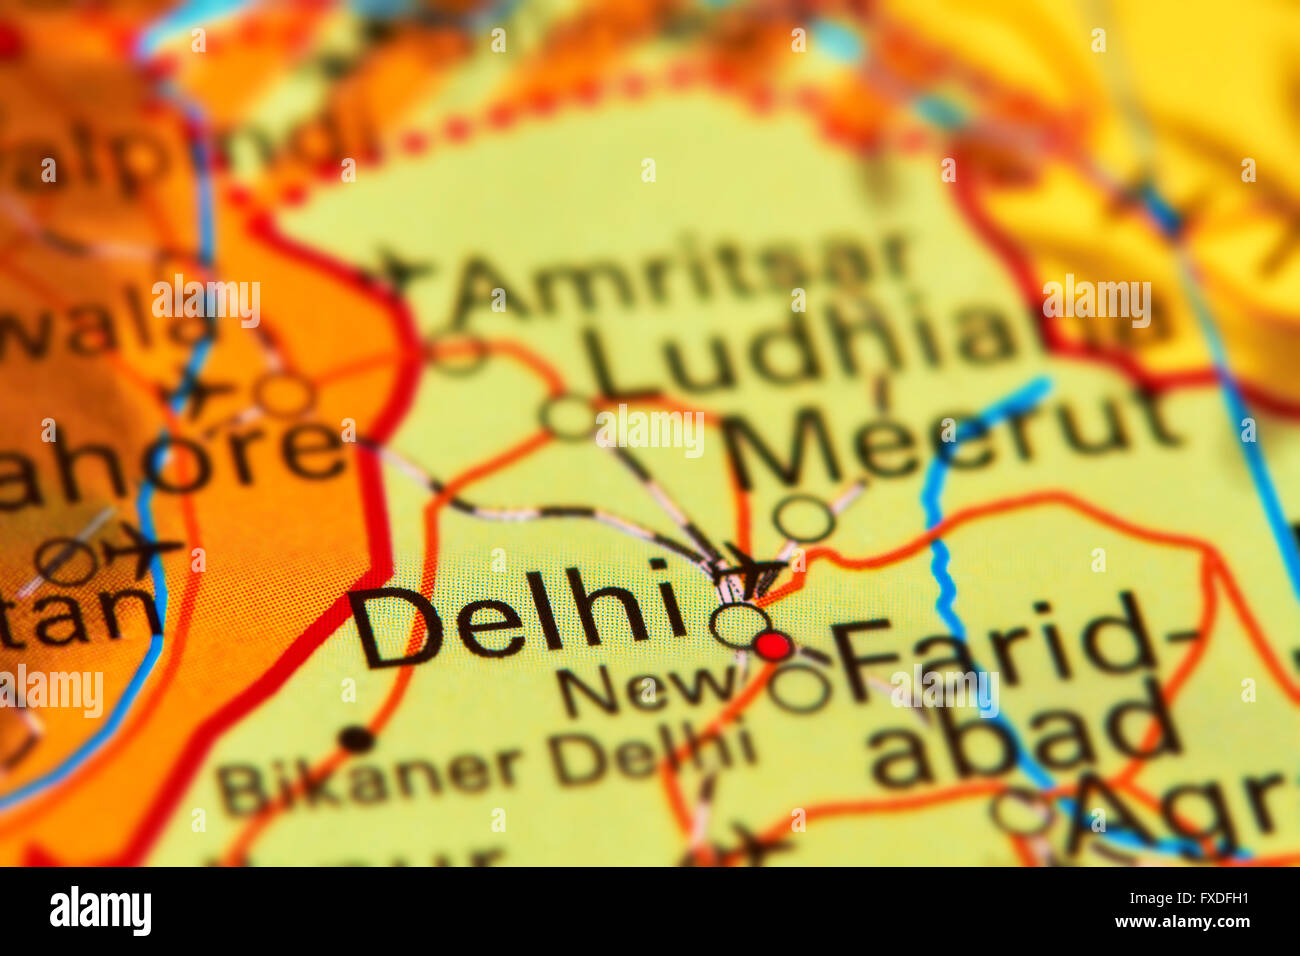 Delhi City In India Asia On The World Map Stock Photo 102330509